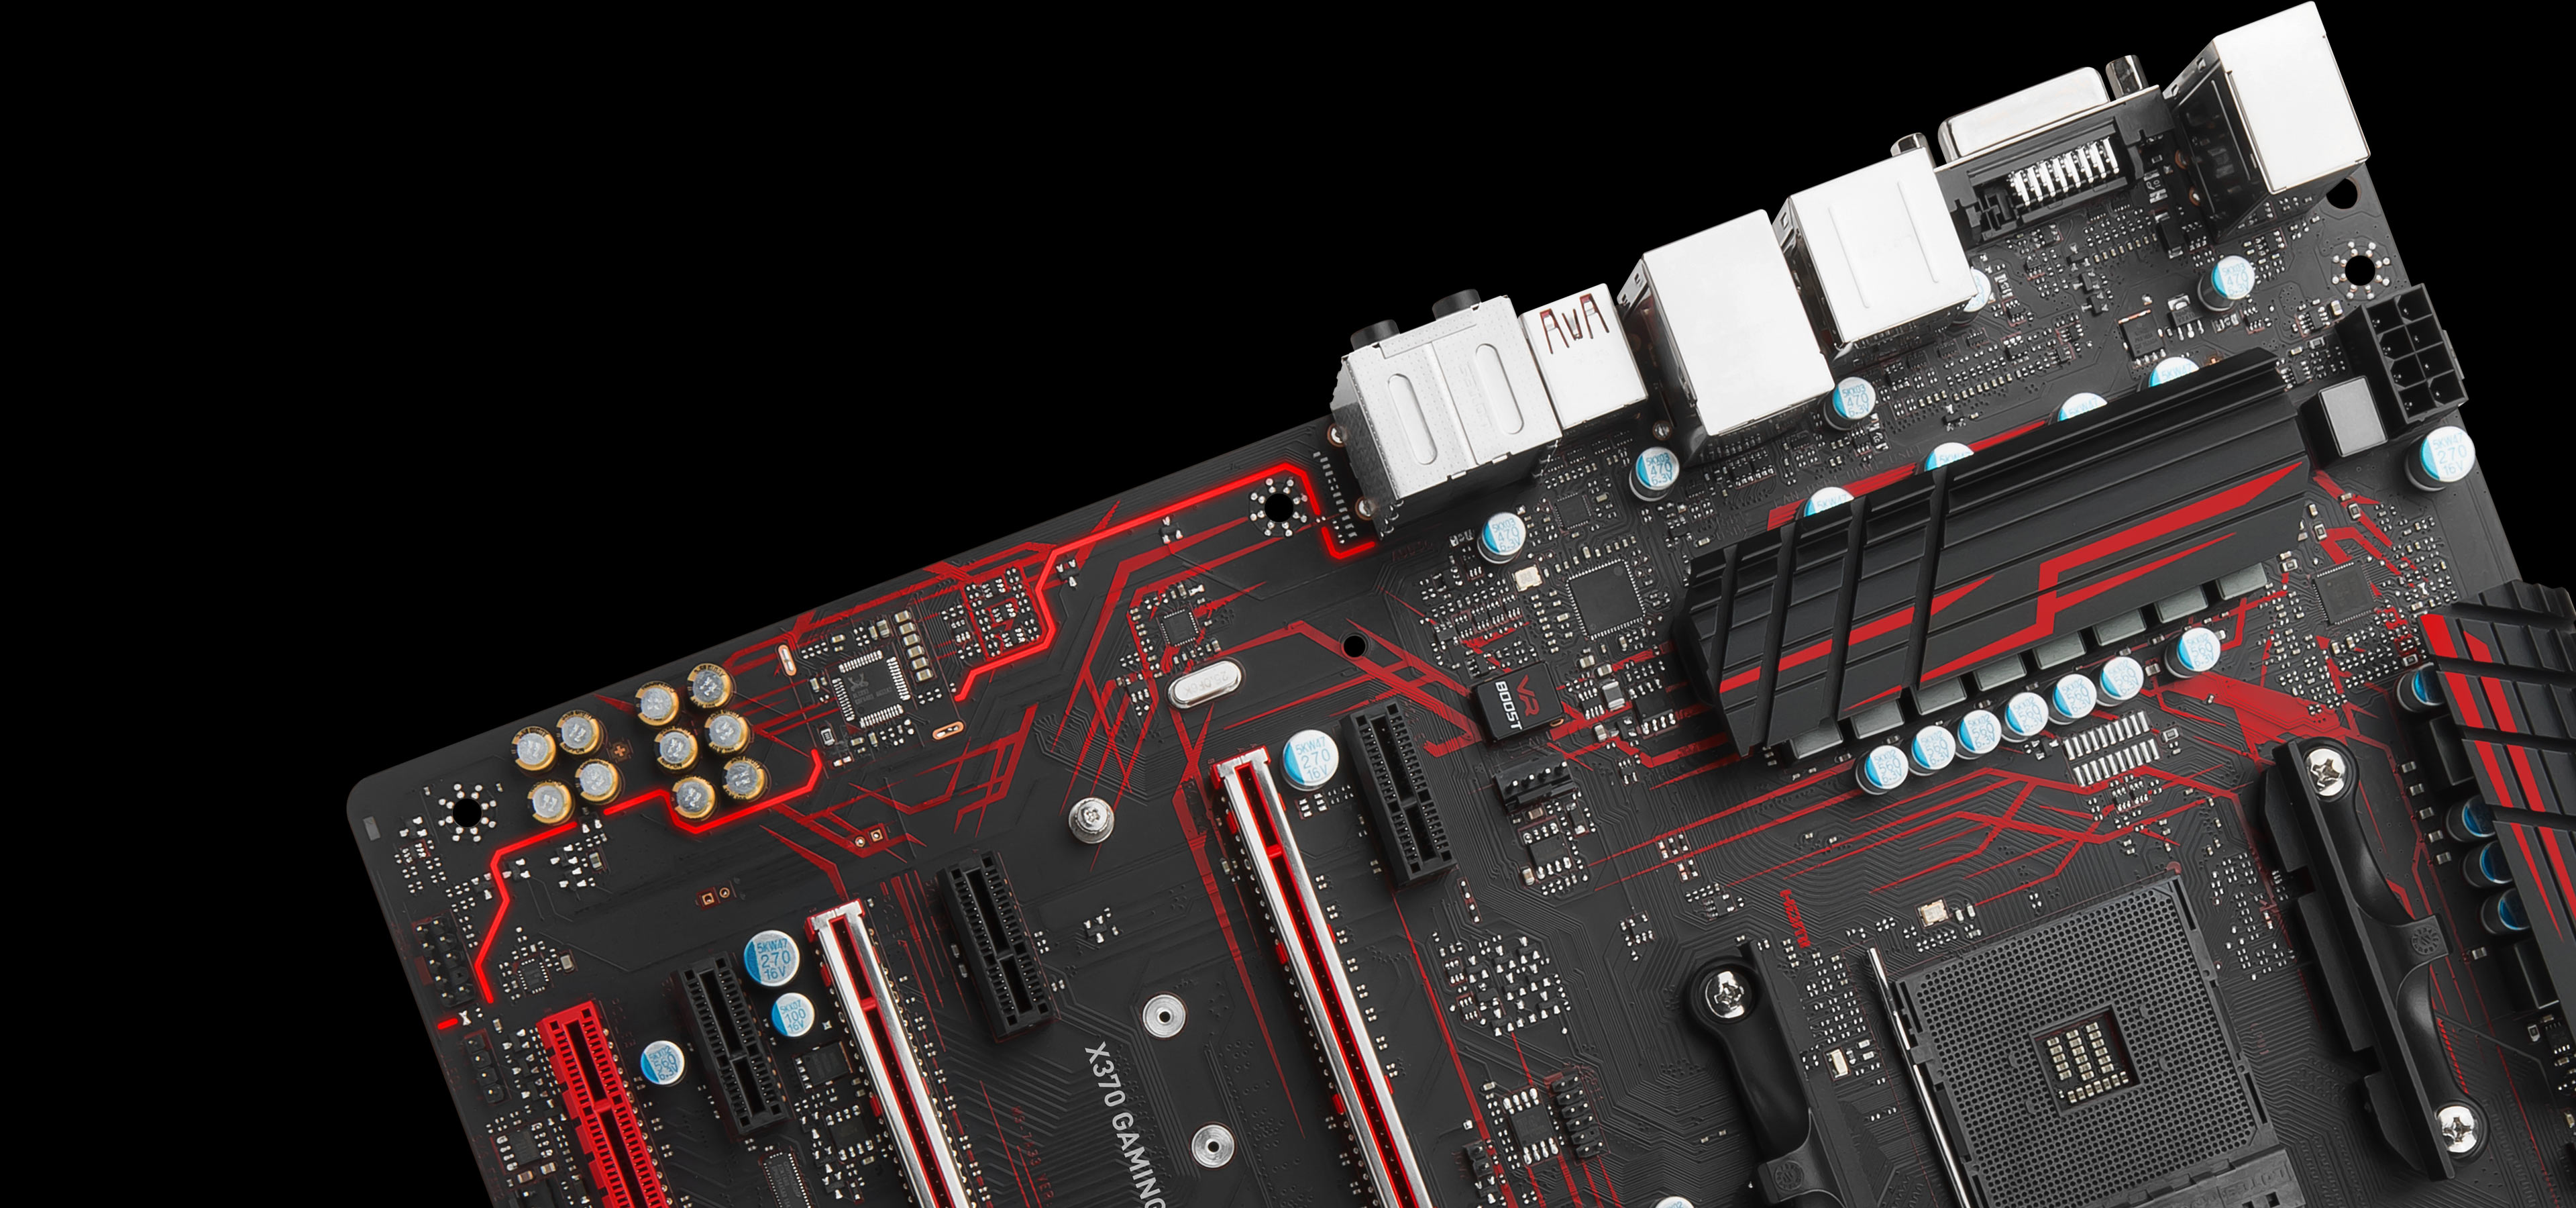 X370 Gaming Plus Motherboard The World Leader In Ether Cable Wiring Diagram Together With Telephone Wire Color Code Using Only Finest Quality Components And Integrating Latest Technological Innovations Delivers Best Possible Professional Experience